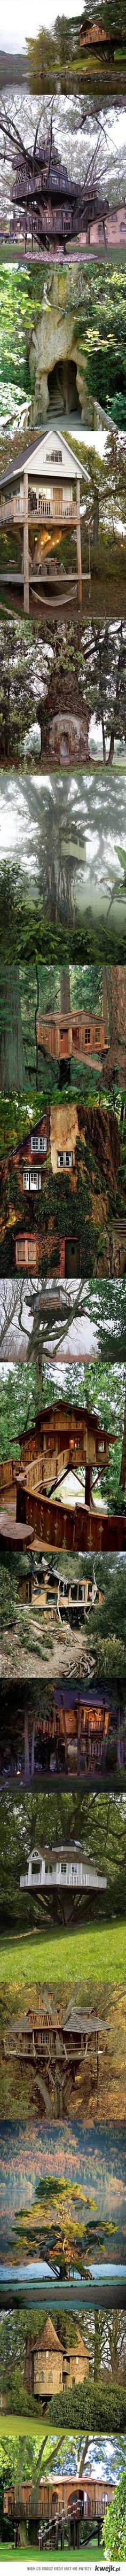 Tree house compilation